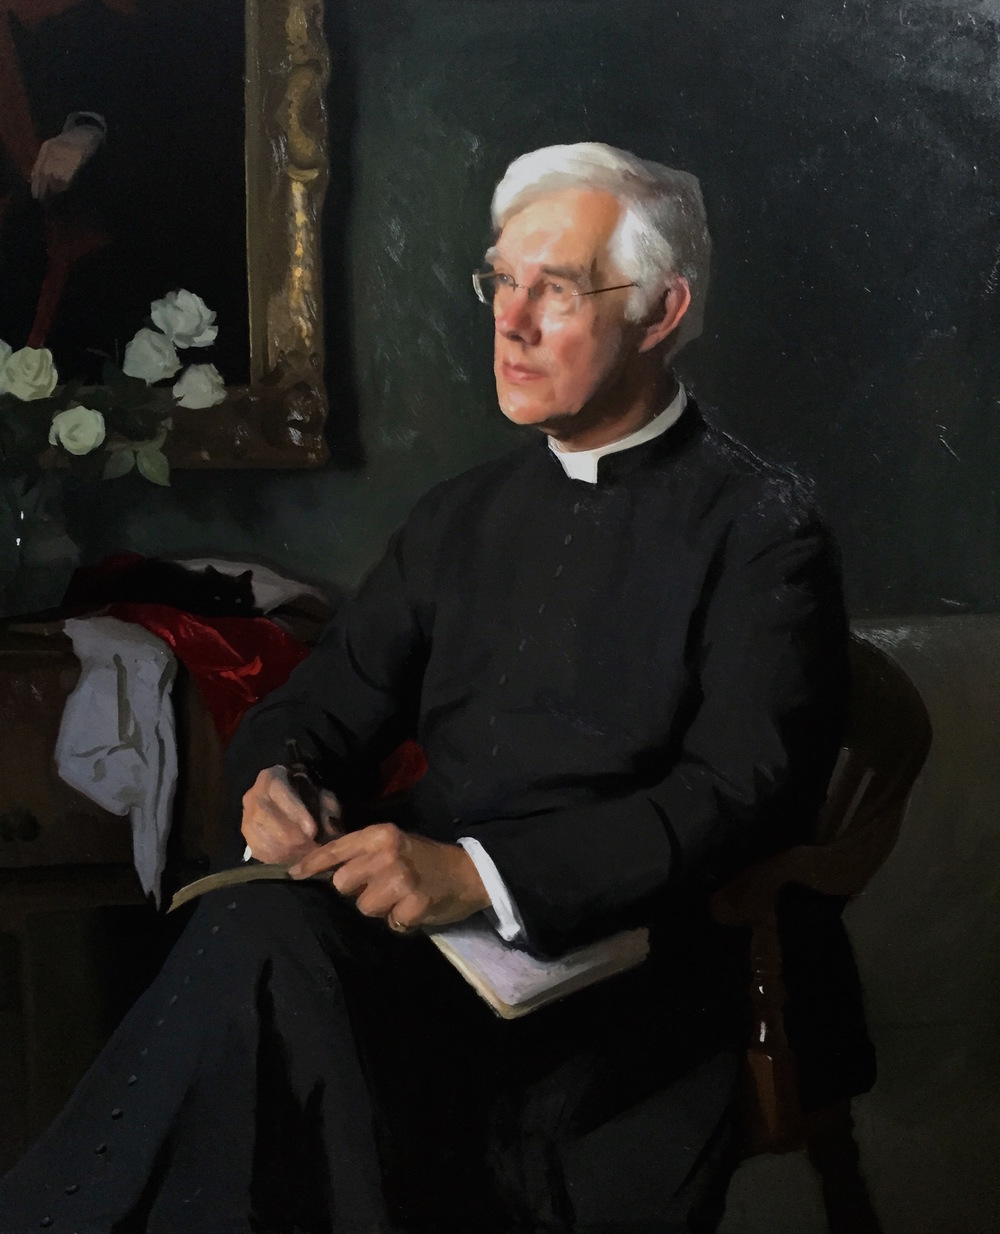 The Dean of Canterbury, Robert Willis